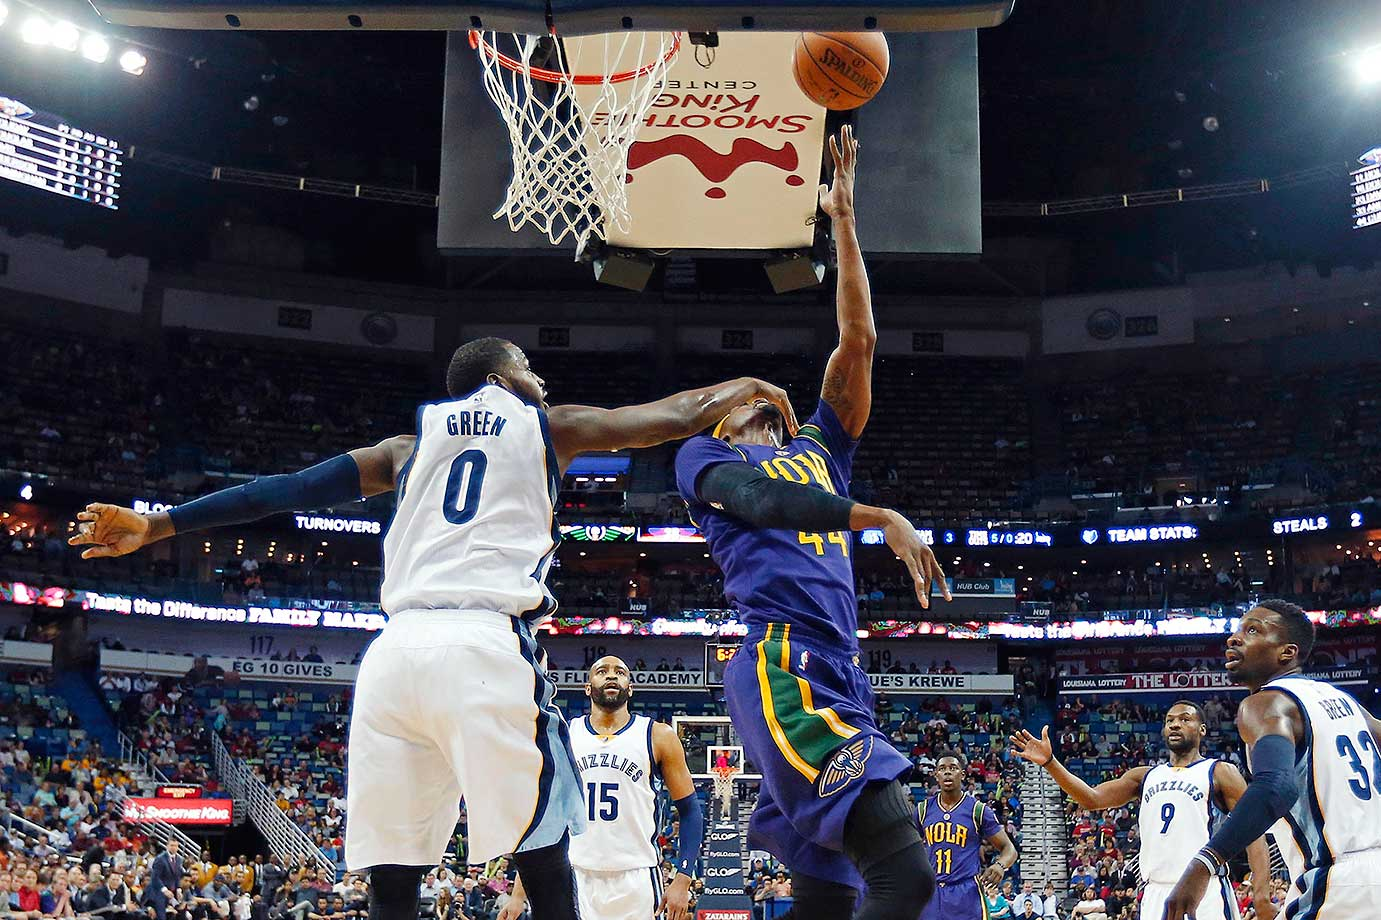 Memphis Grizzlies forward JaMychal Green fouls New Orleans Pelicans forward Dante Cunningham as he drives to the basket in New Orleans.